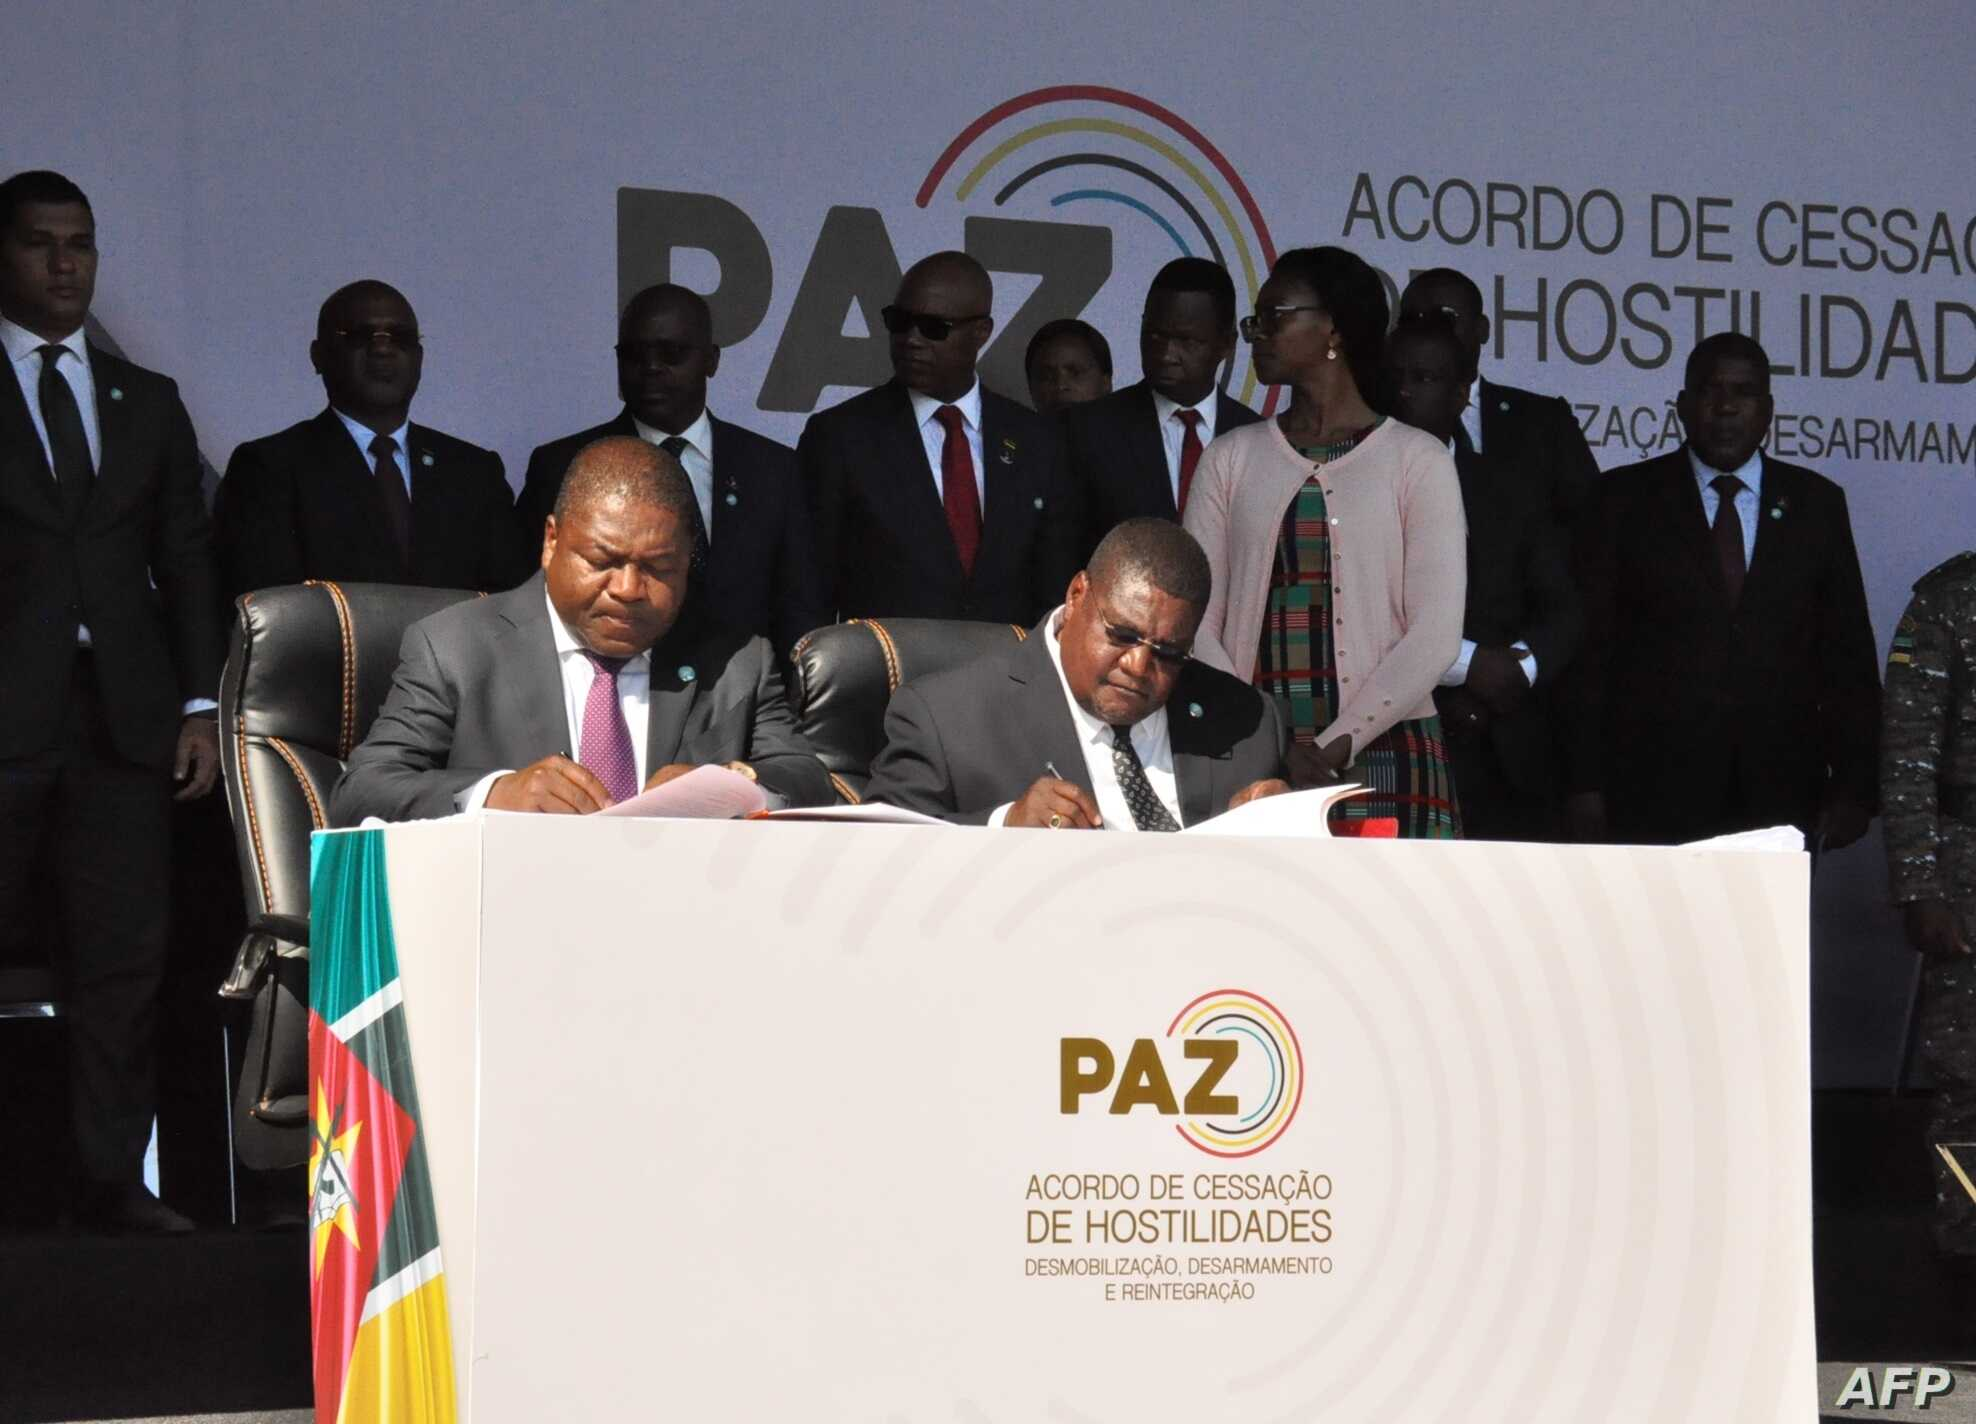 Mozambique's President Filipe Nyusi, left, and Renamo leader Ossufo Momade sign a cease-fire agreement in Gorongosa, in this handout photo taken and released by the office of the President of Mozambique on Aug. 1, 2019.